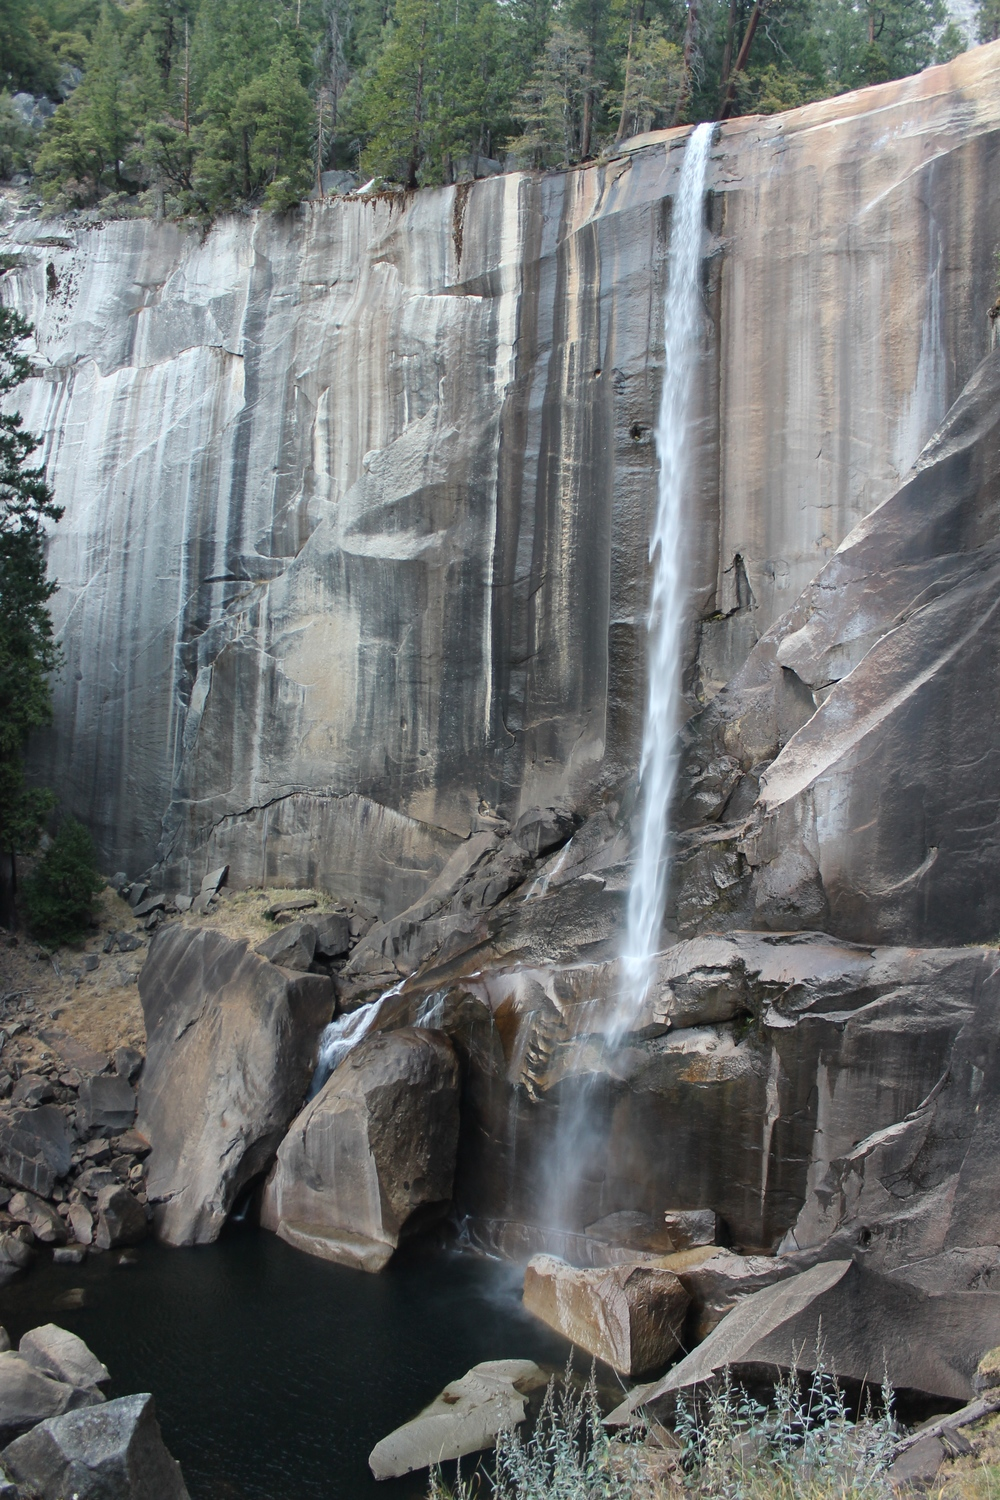 Vernal Fall. A small trickle at the (hopefully) end of a couple drought years.